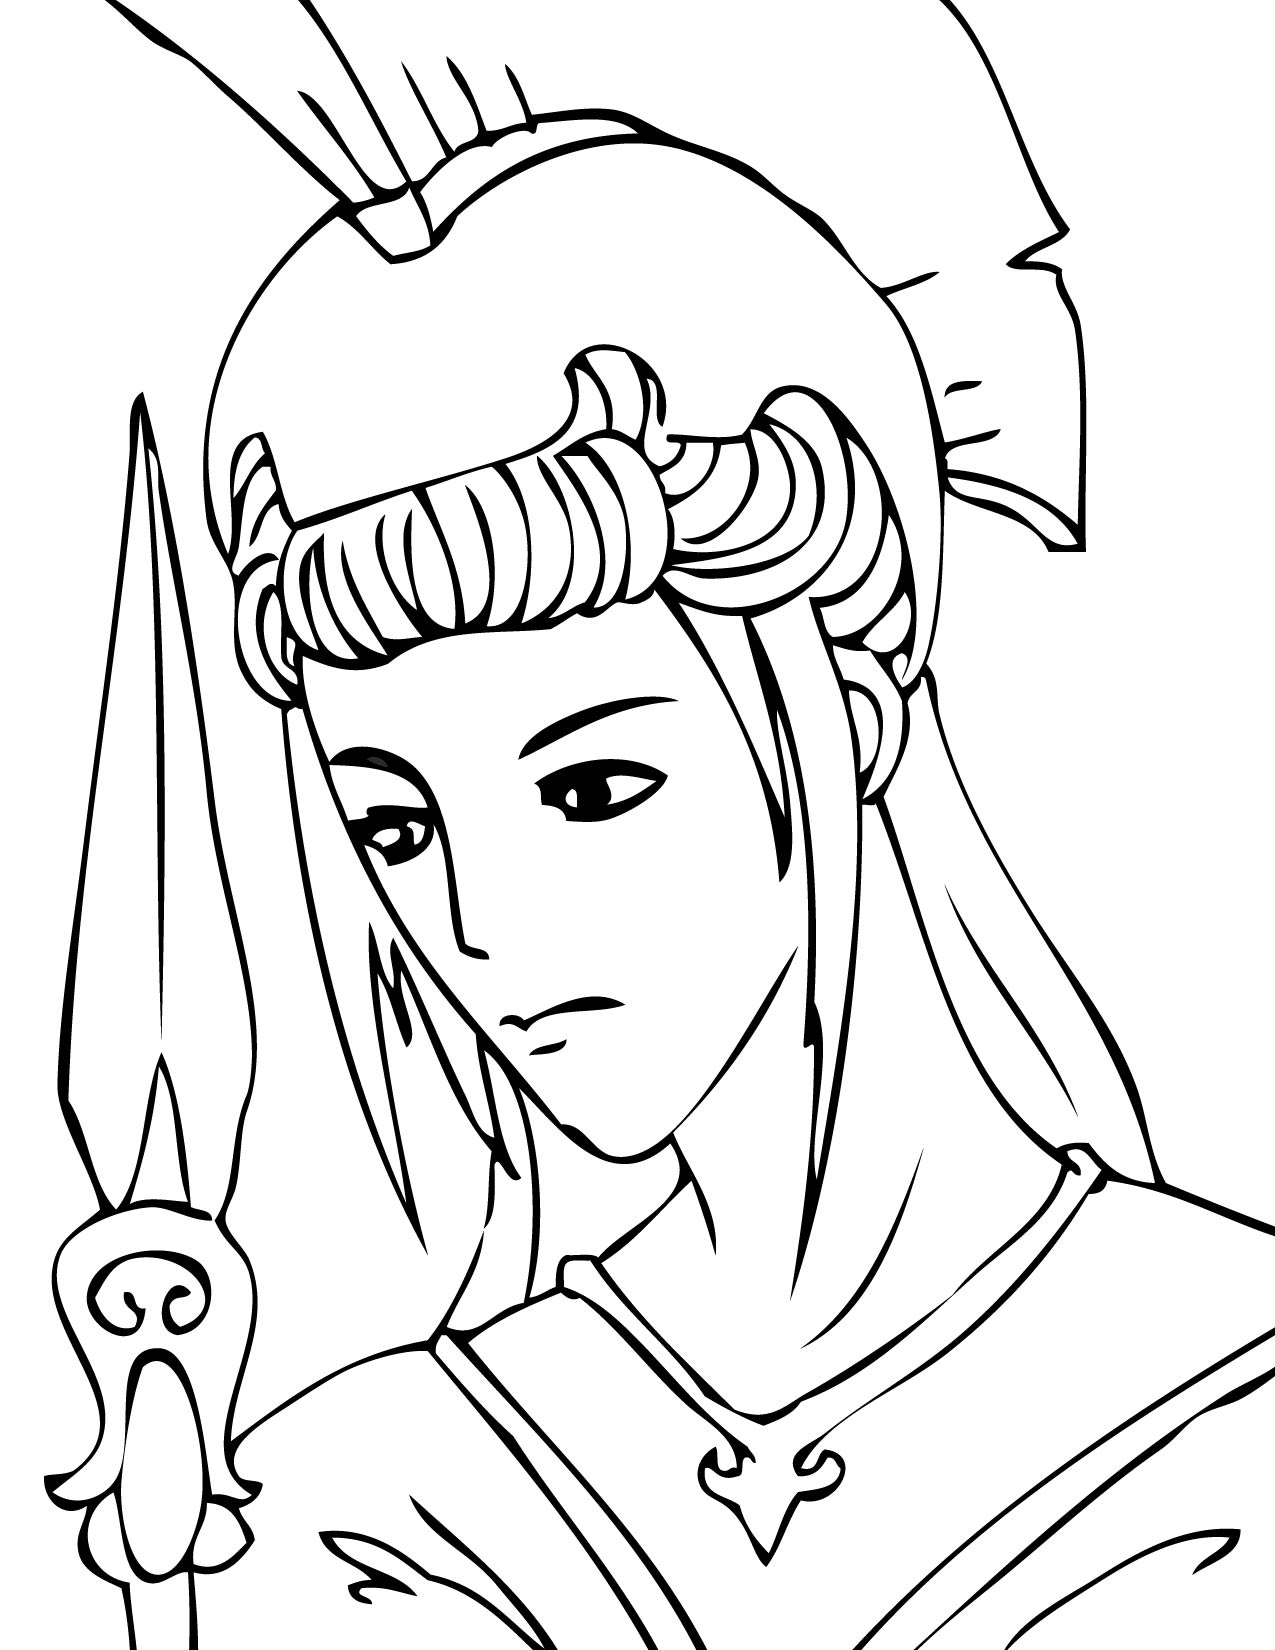 coloring pages online greek myths - photo#34